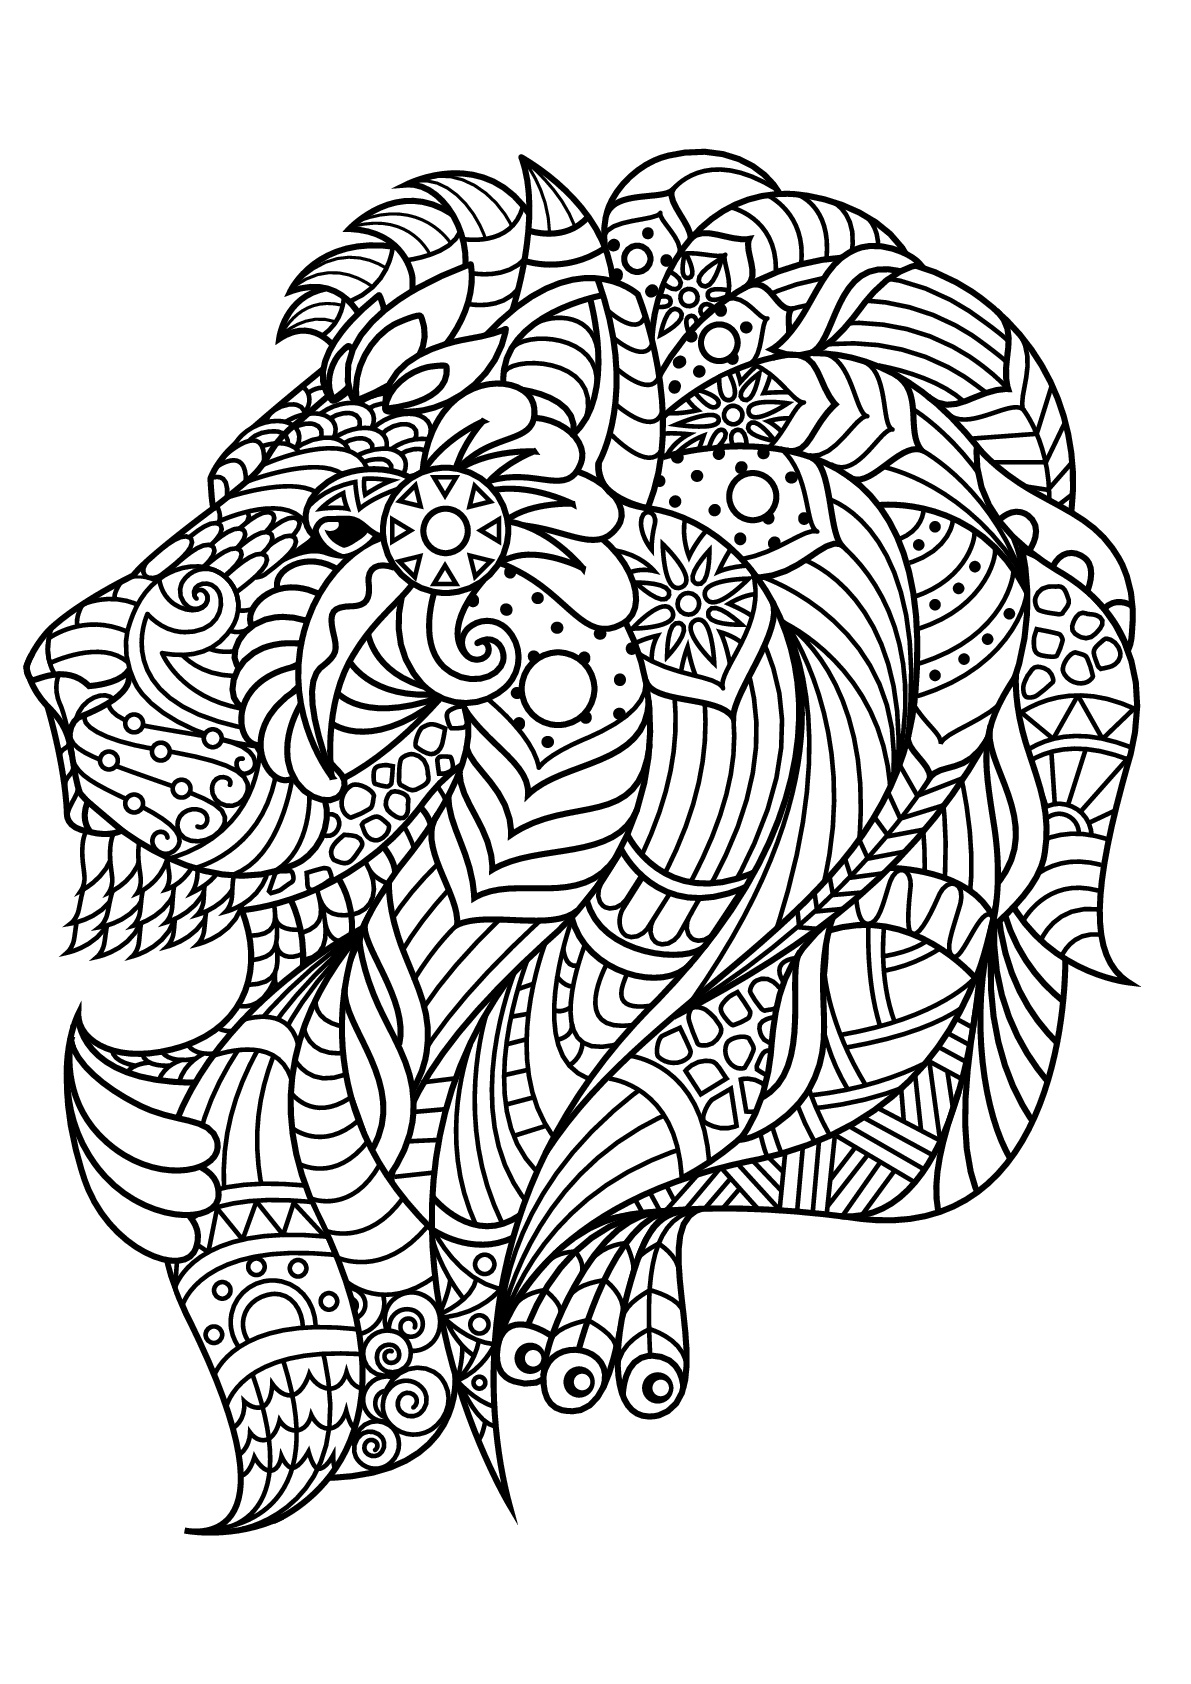 printable pictures of lions free book lion lions adult coloring pages lions pictures printable of